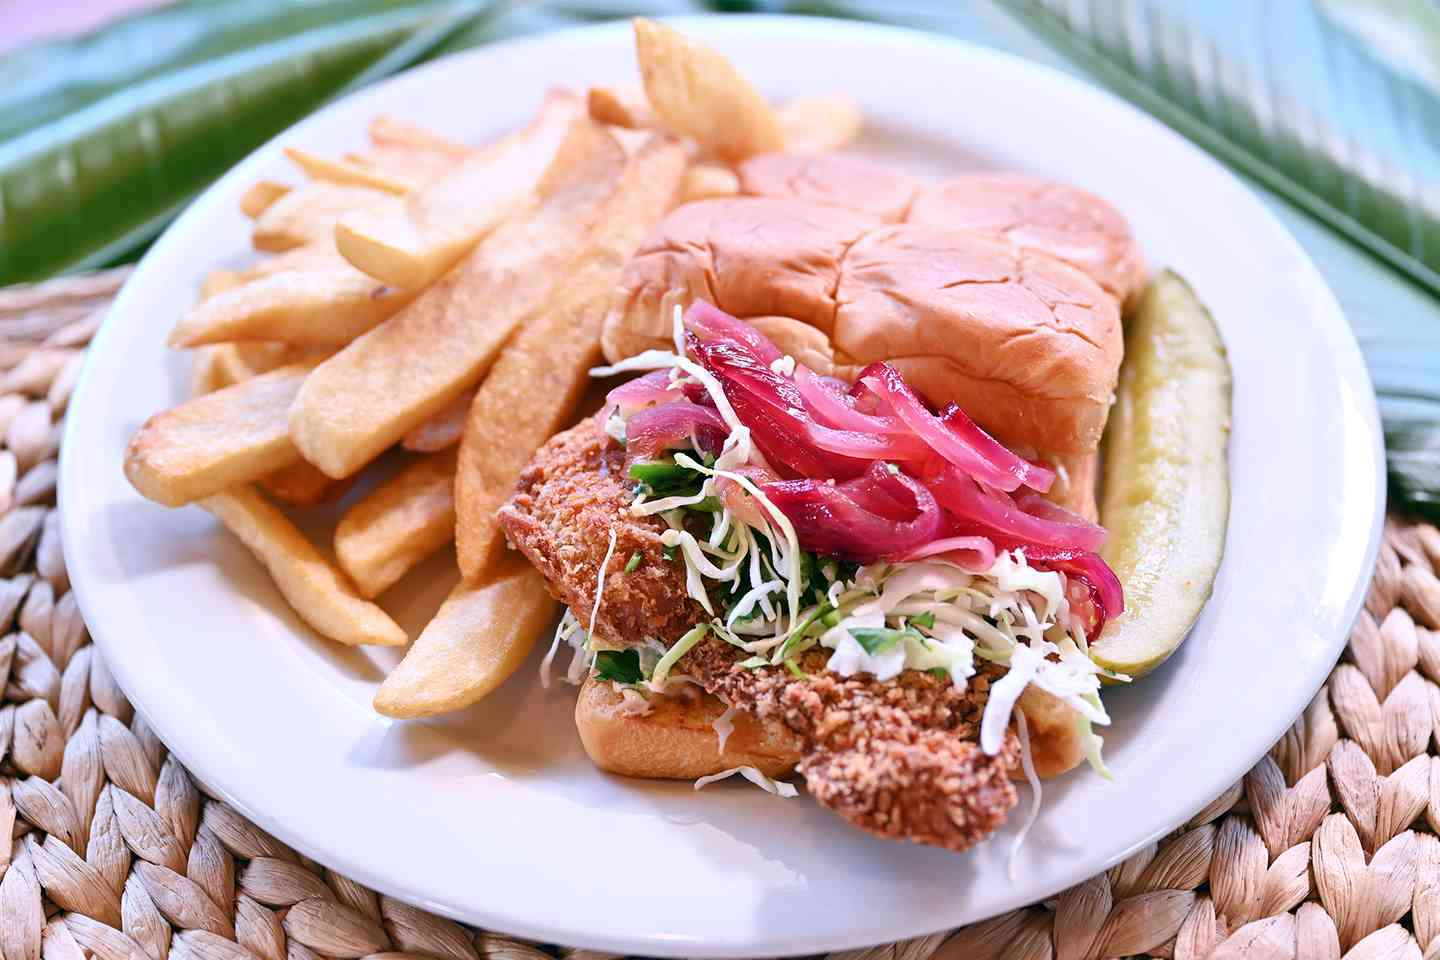 Maui Crispy Chicken Sandwich